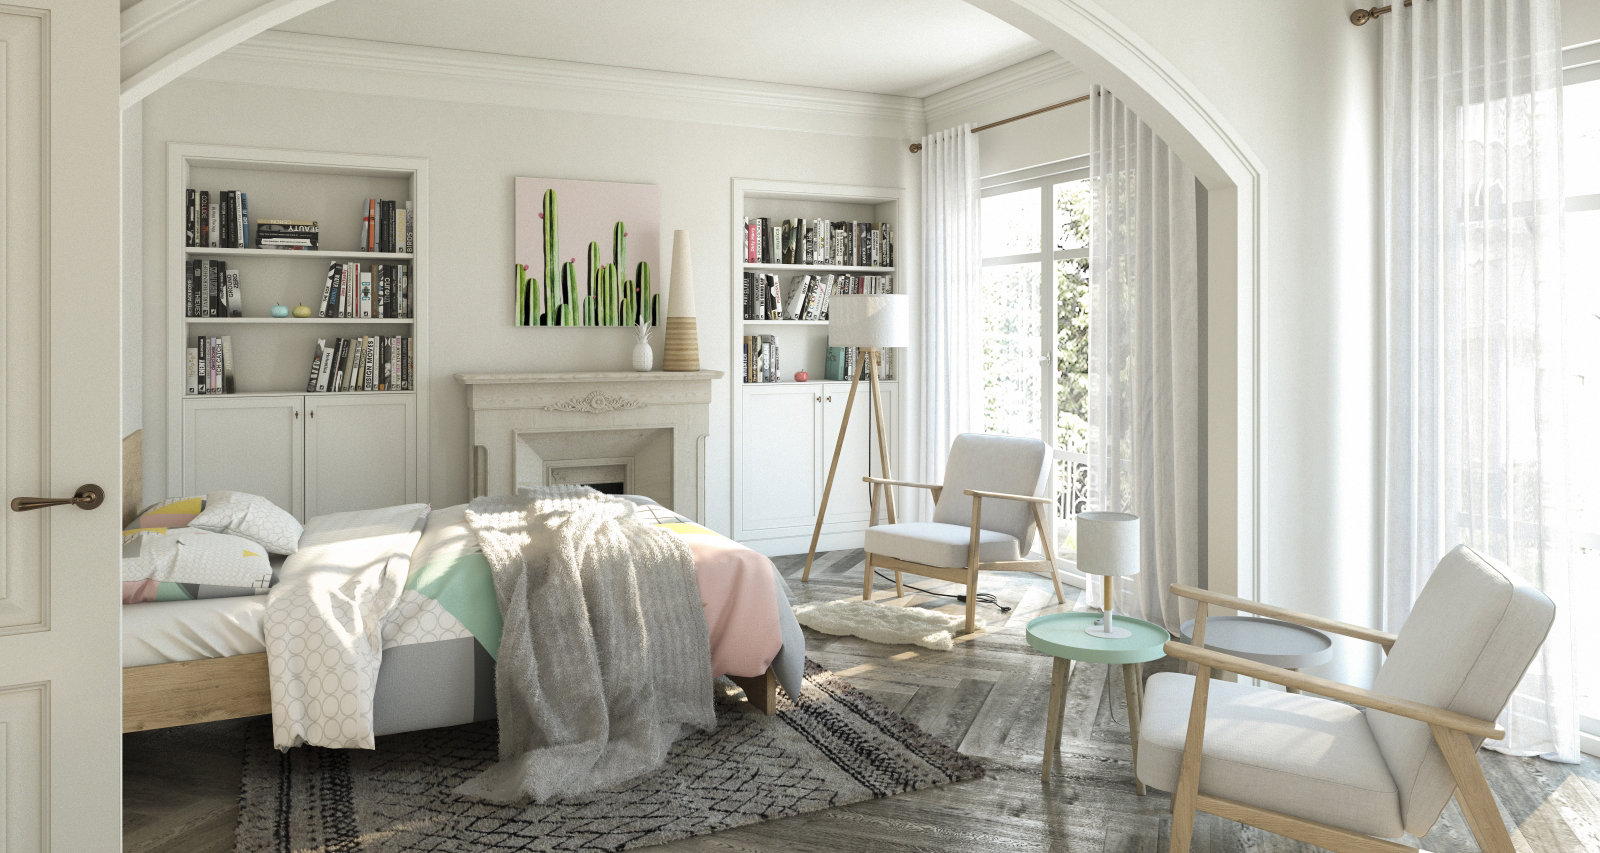 Chambre scandinave blanche beige: inspiration style Scandinave